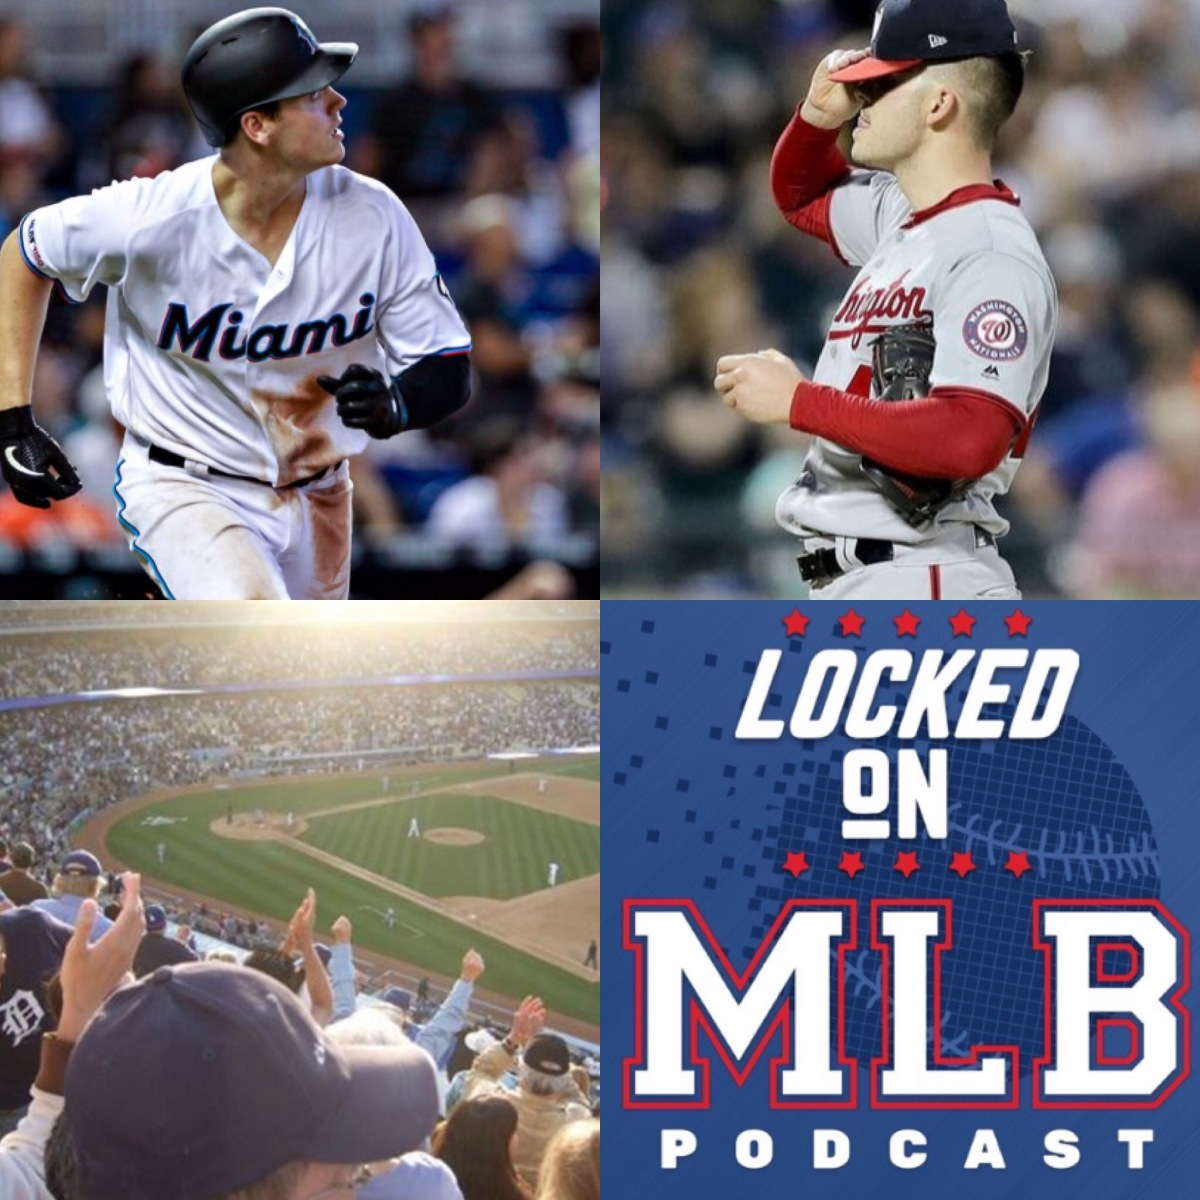 Baseball For Lunch -Locked On MLB - May 23, 2019